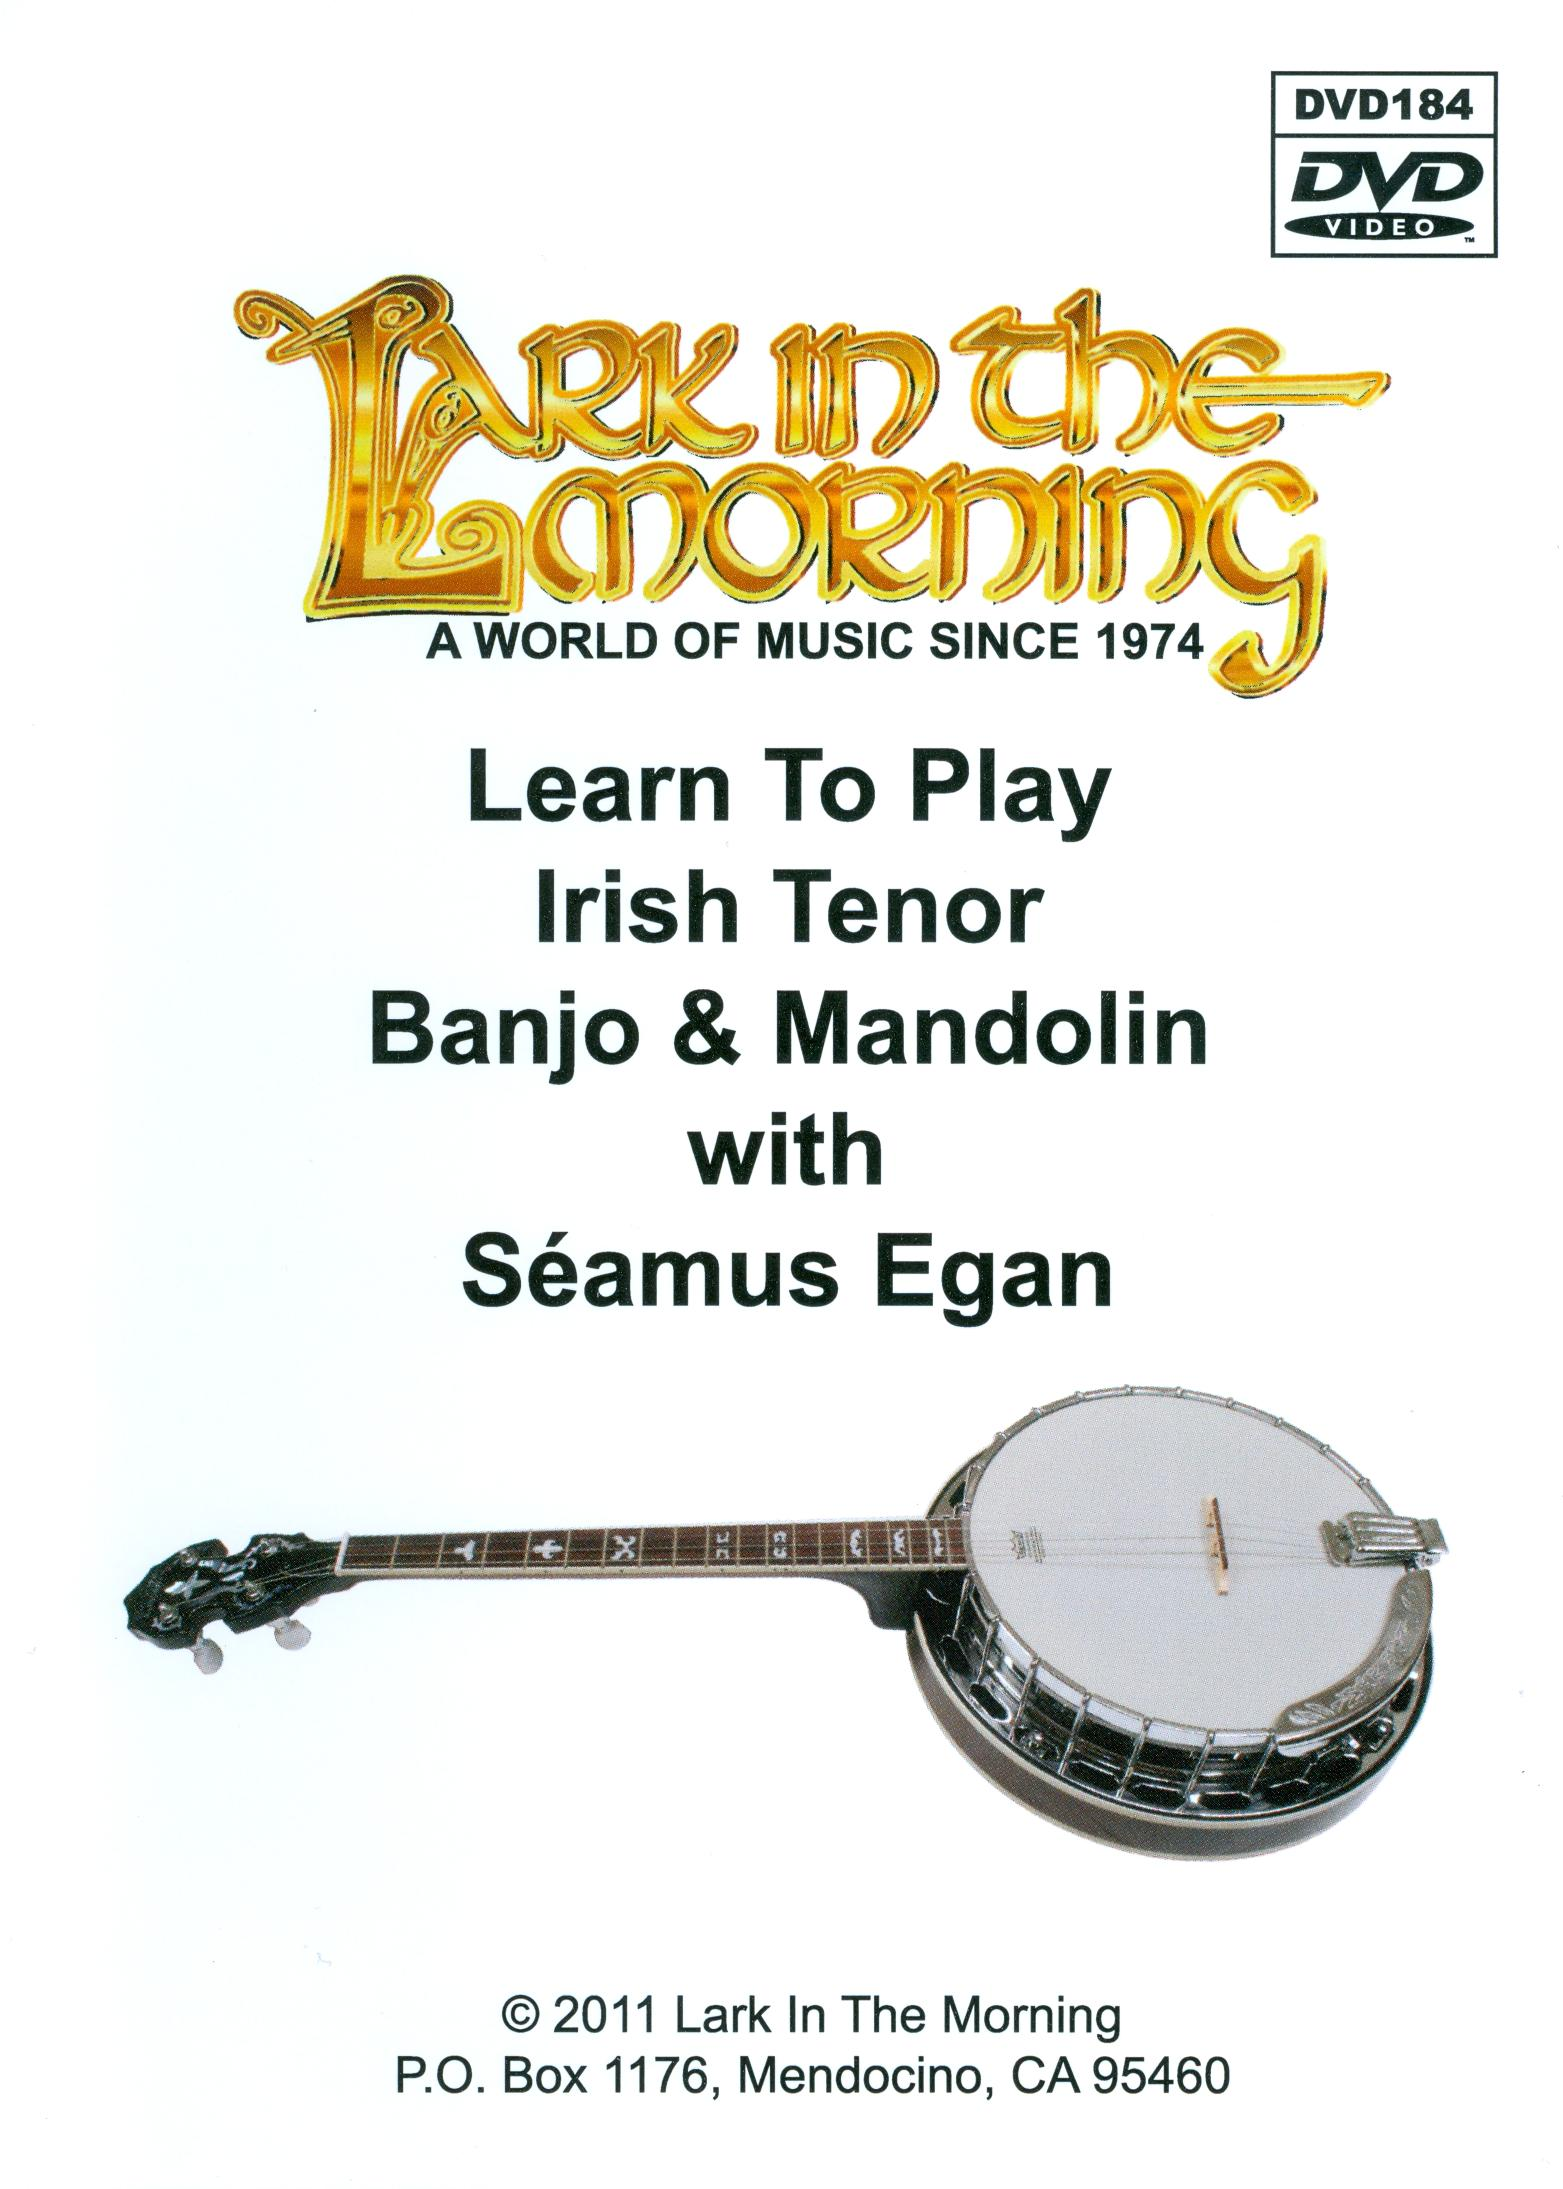 How to Play Mandolin: 15 Steps (with Pictures) - wikiHow